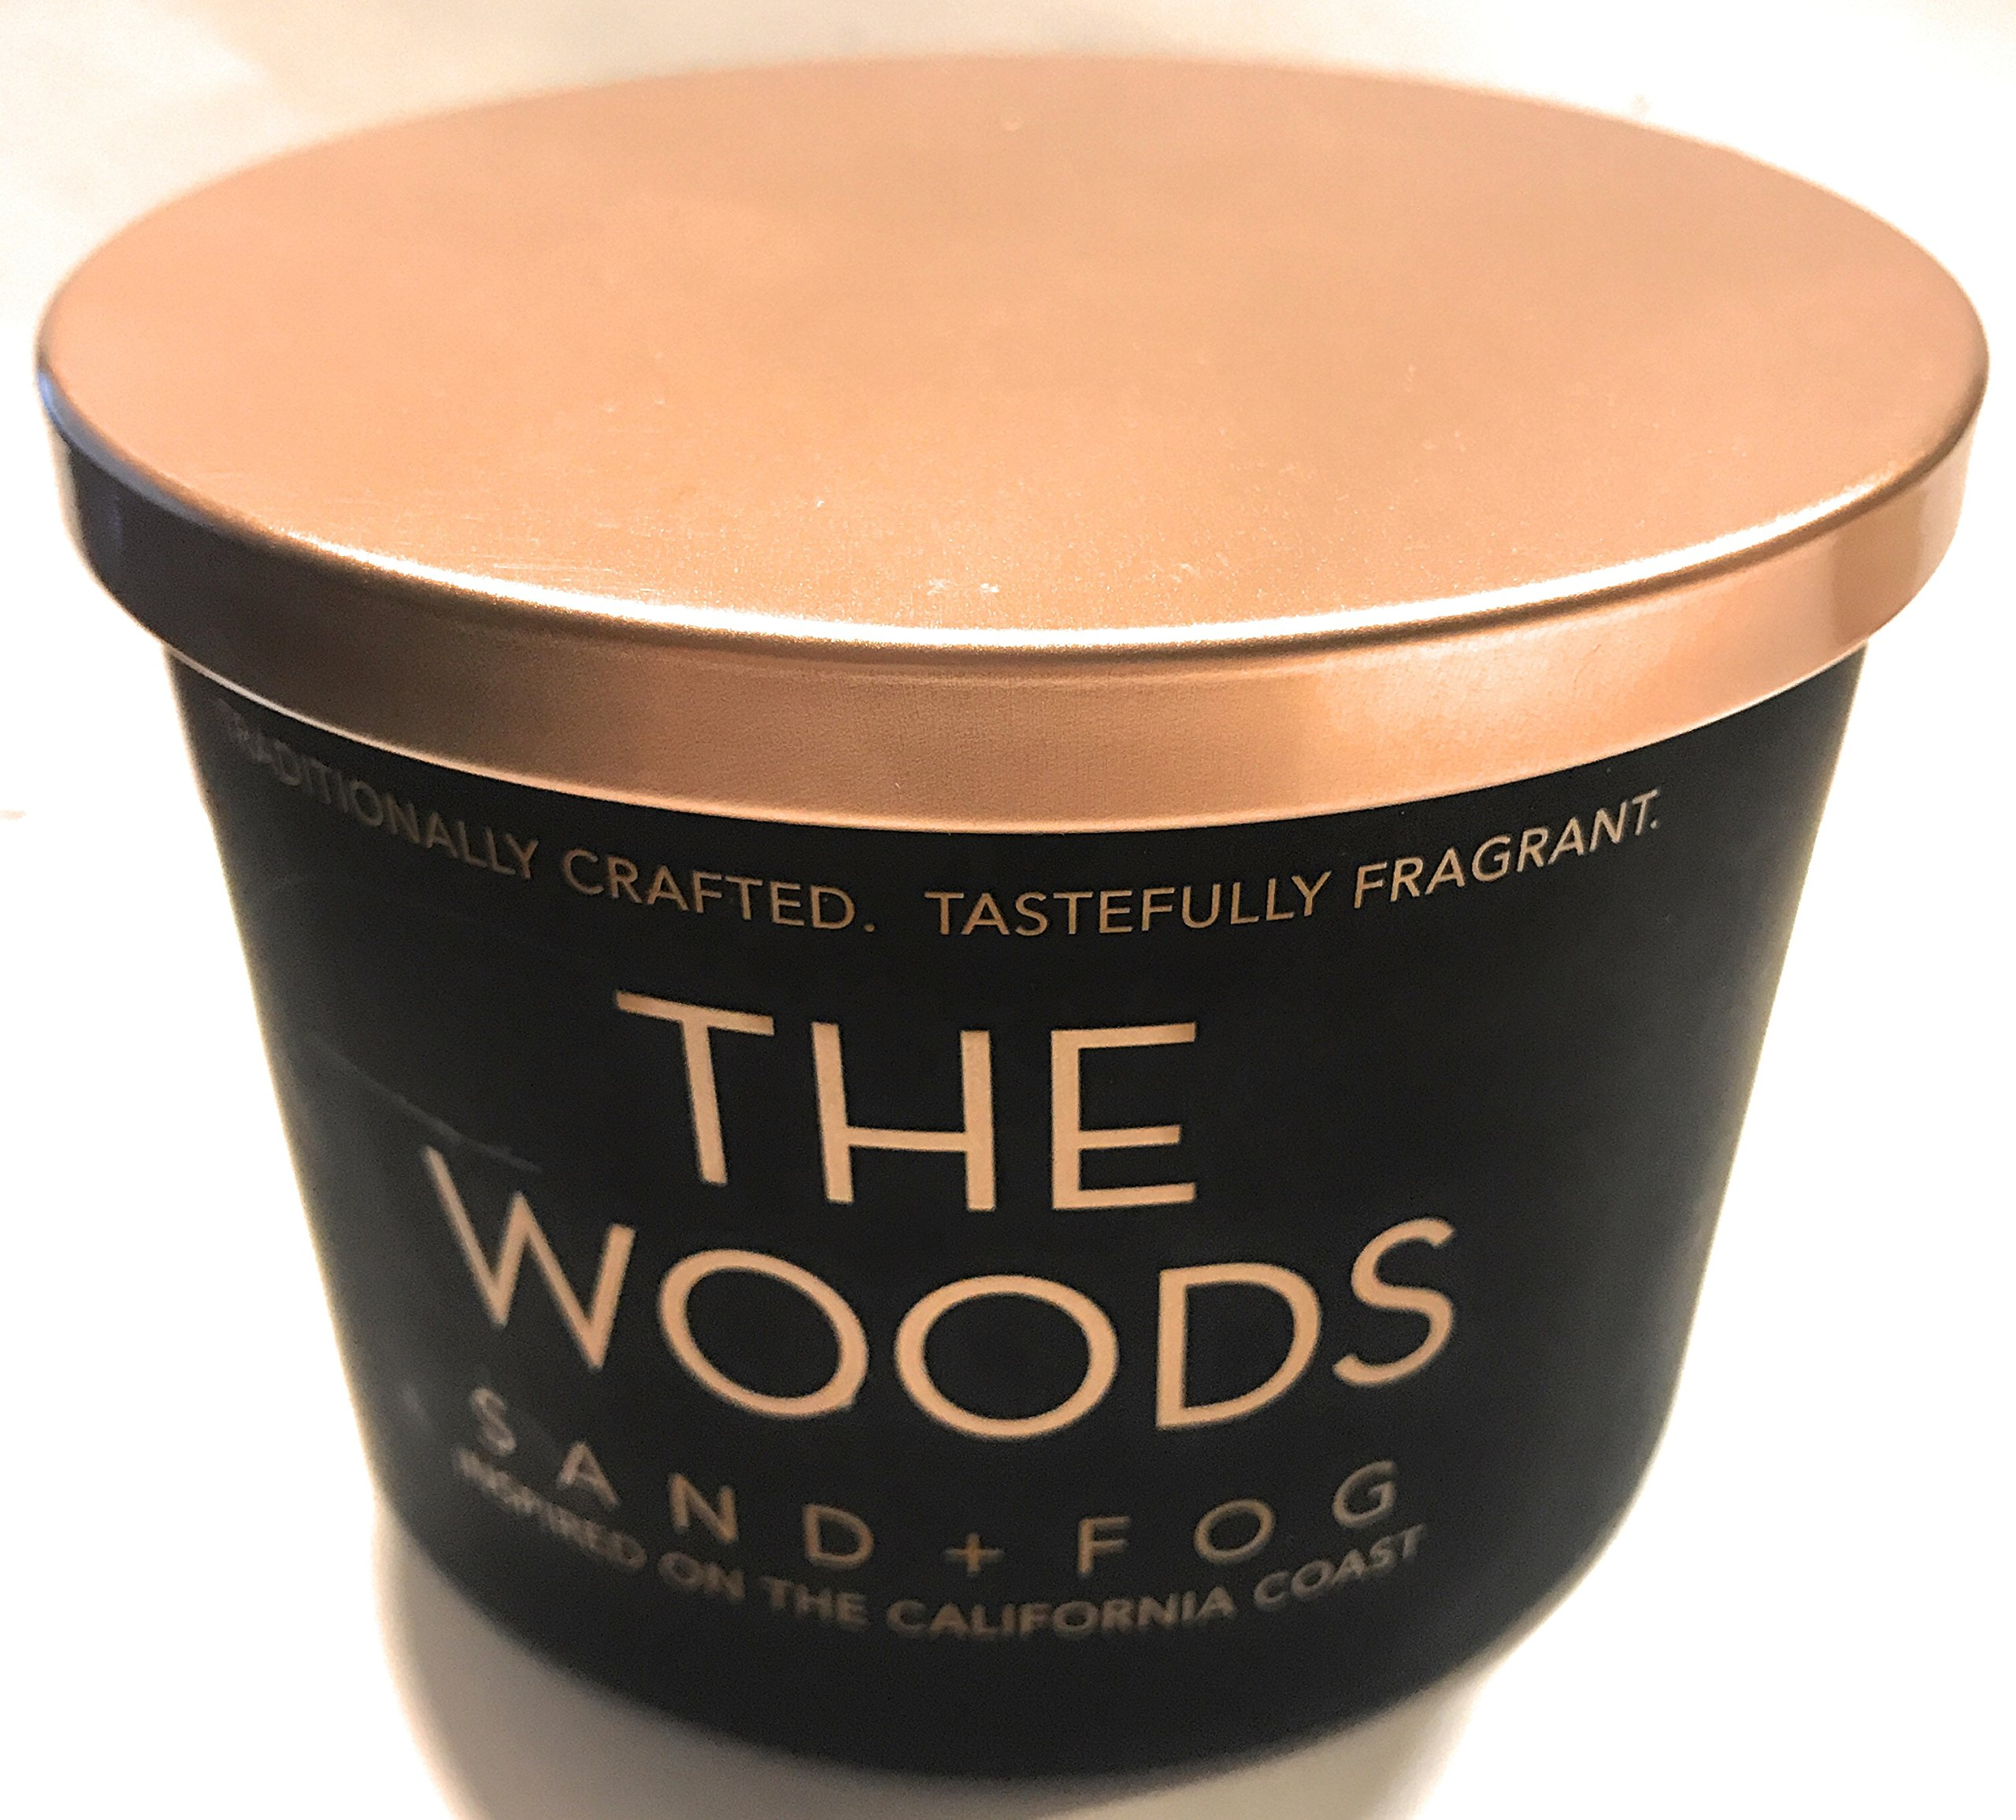 Sand + Fog The Woods Candle 12 Oz